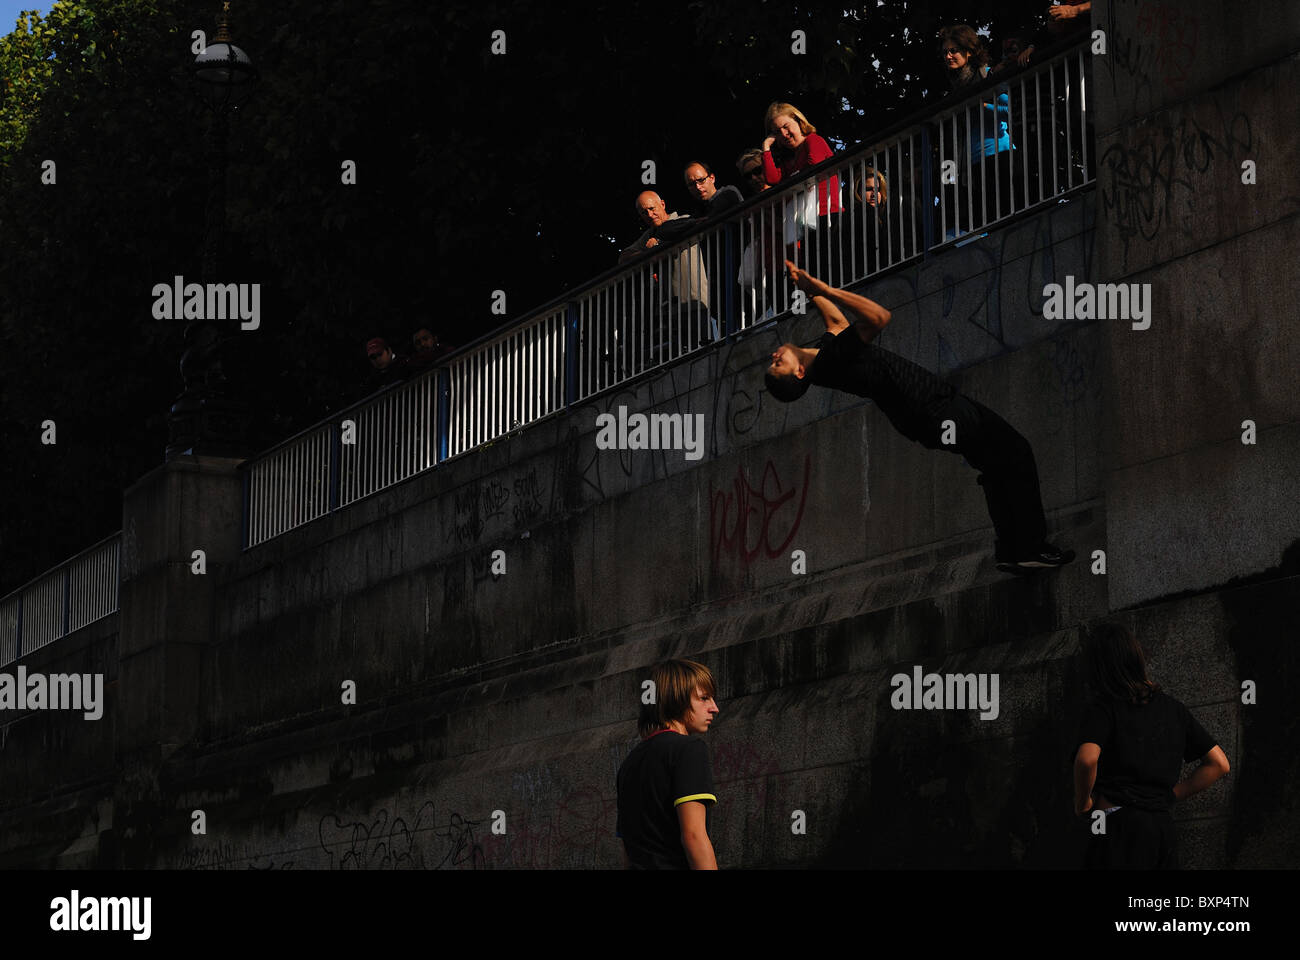 Traceur practicing the art of Parkour doing backflip from wall along bank of River Thames in London. - Stock Image